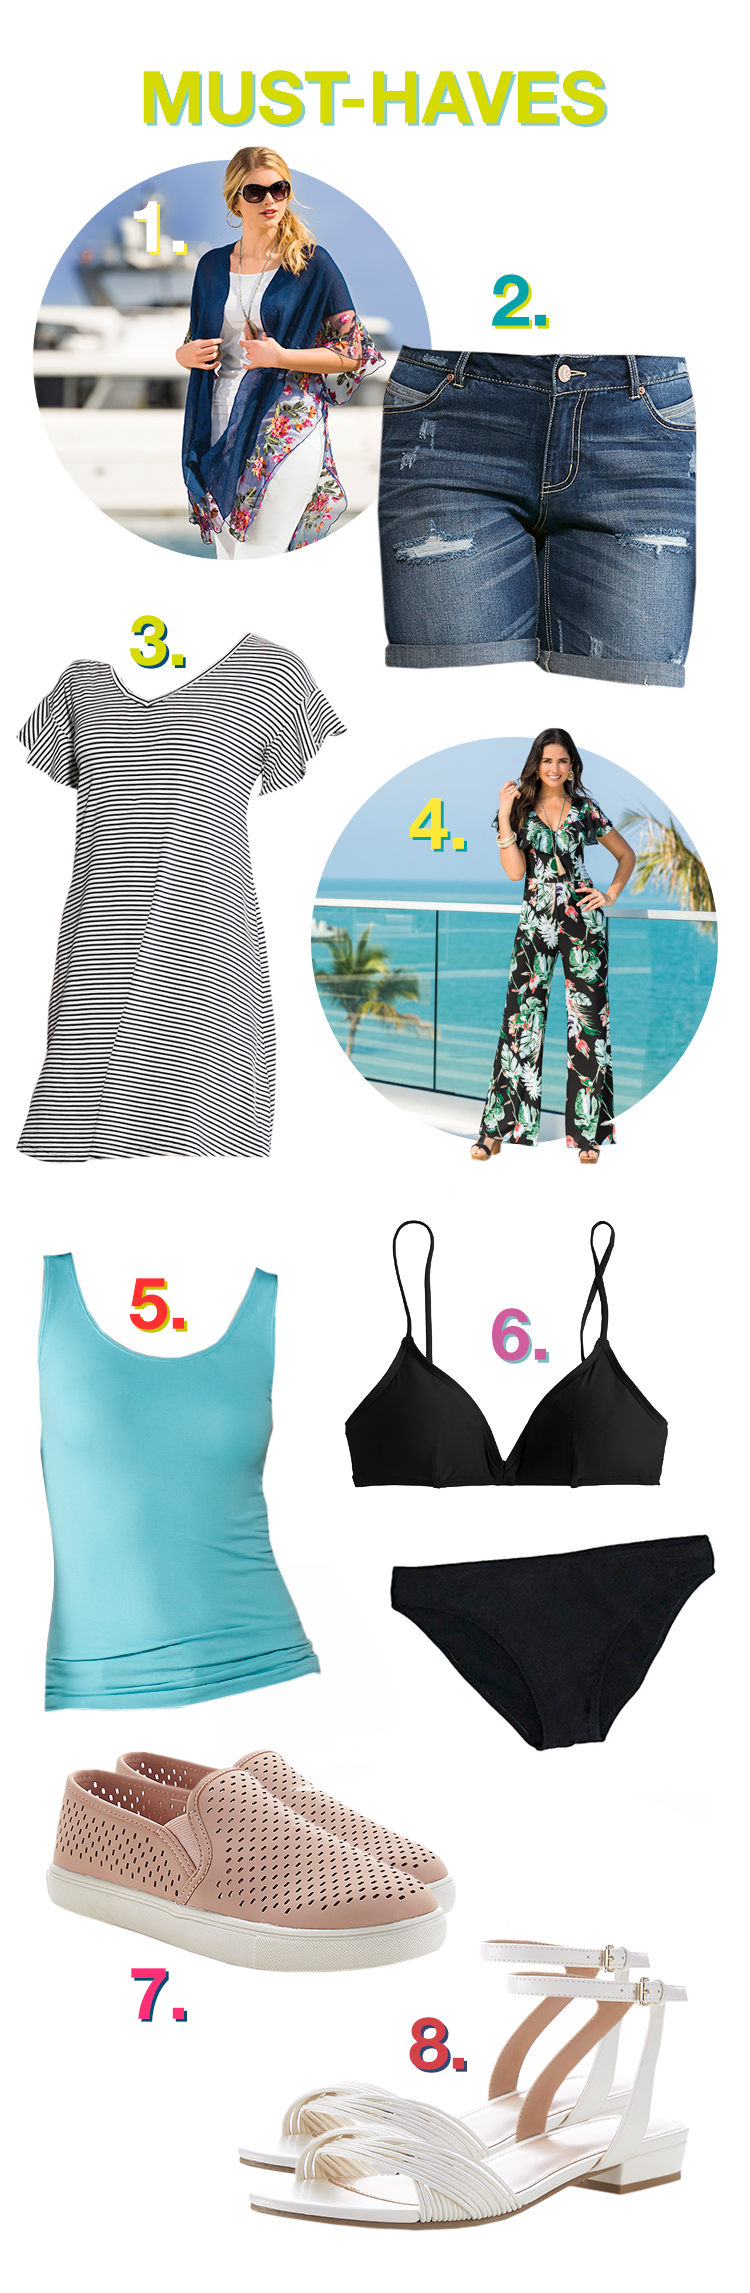 Must-Haves pictures of: 1. Kimono, 2. Shorts, 3. Sun dress, 4. Jumpsuit, 5. Layering Tank, 6. Underwear, 7. Slip on Shoes, 8. Sandals